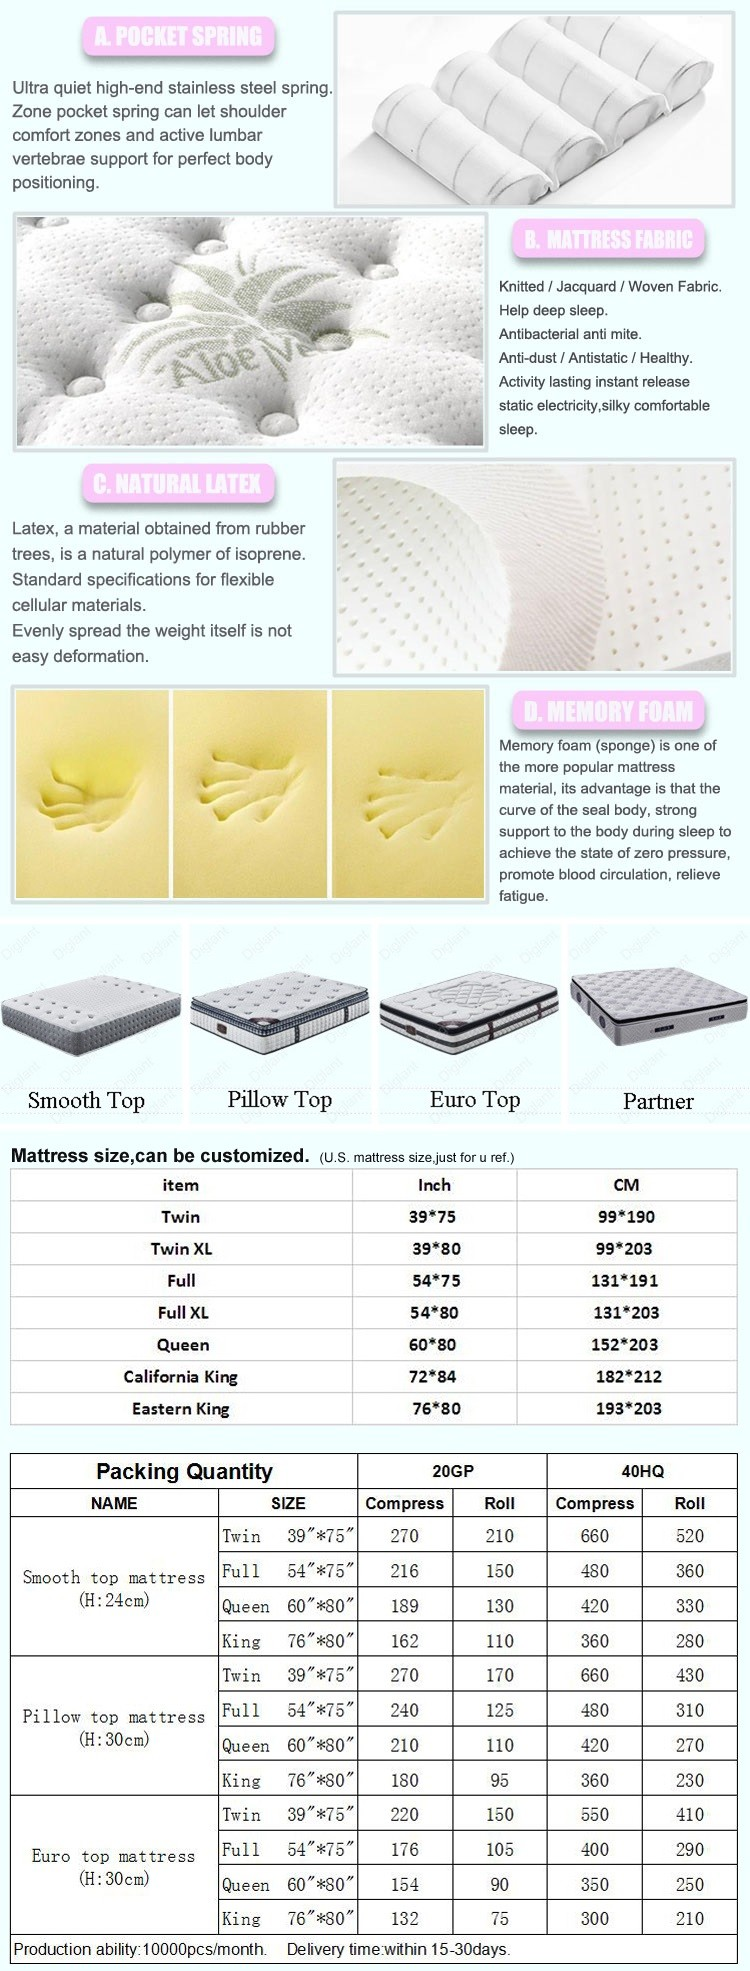 sleepping dream royal bed mattress